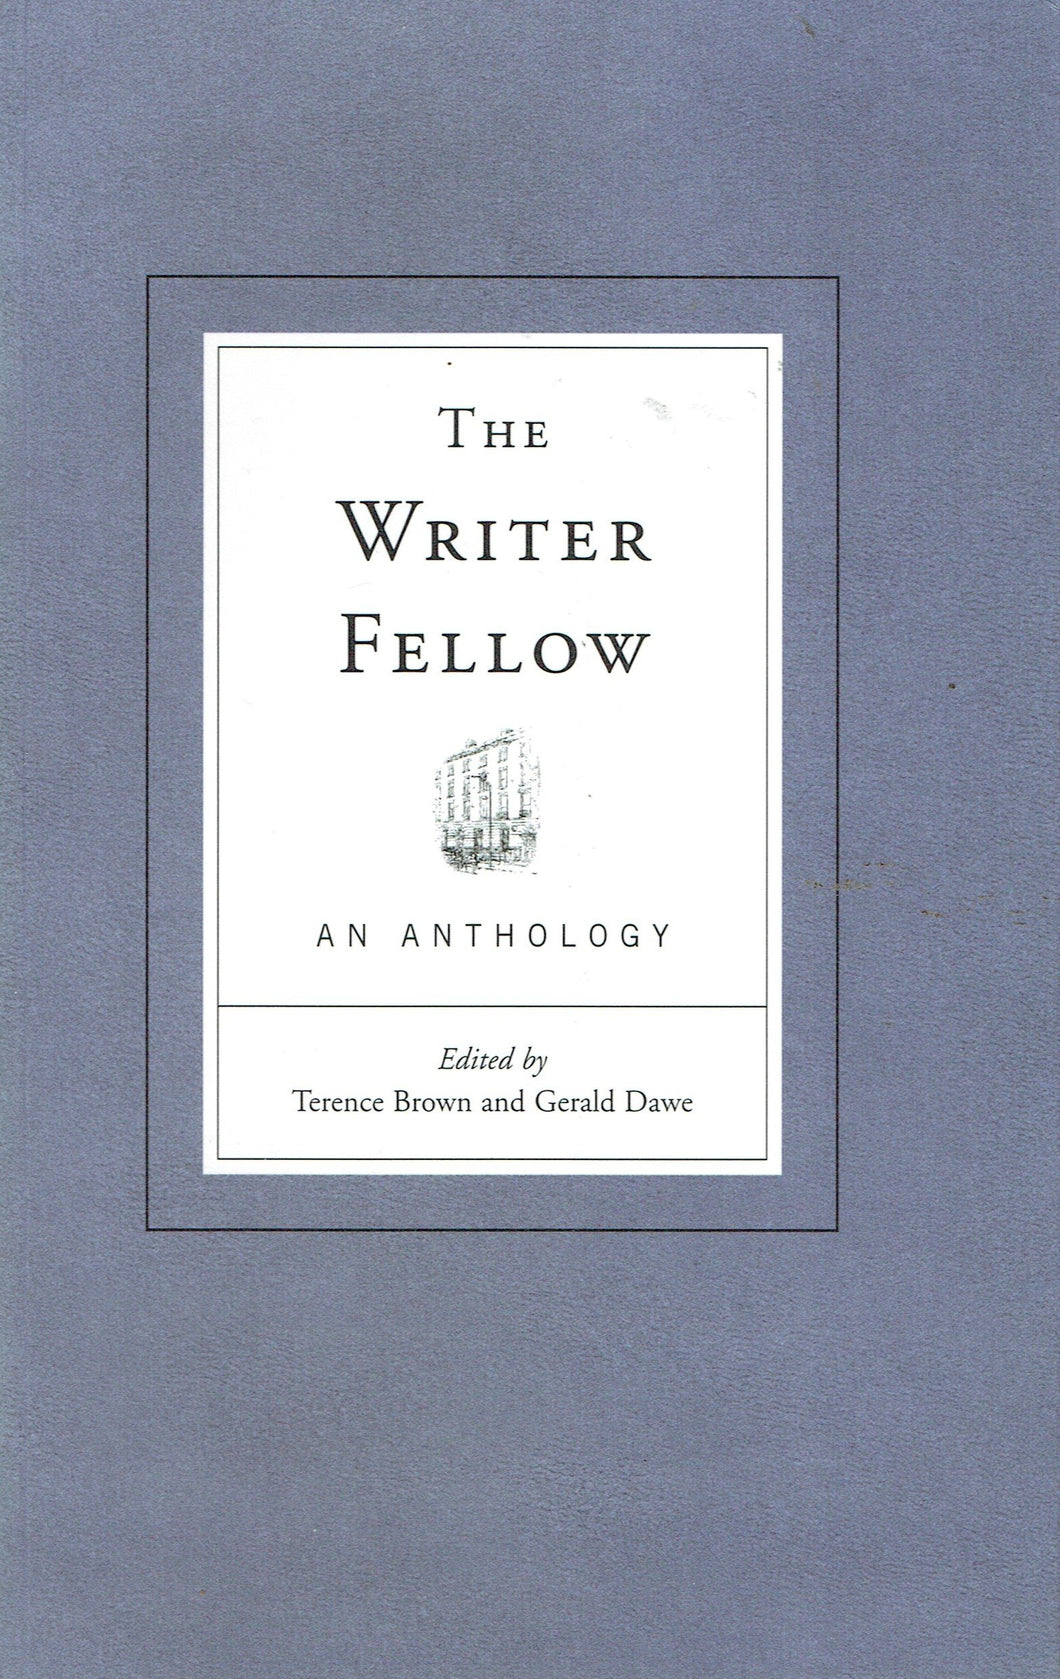 The Writer Fellow - An Anthology